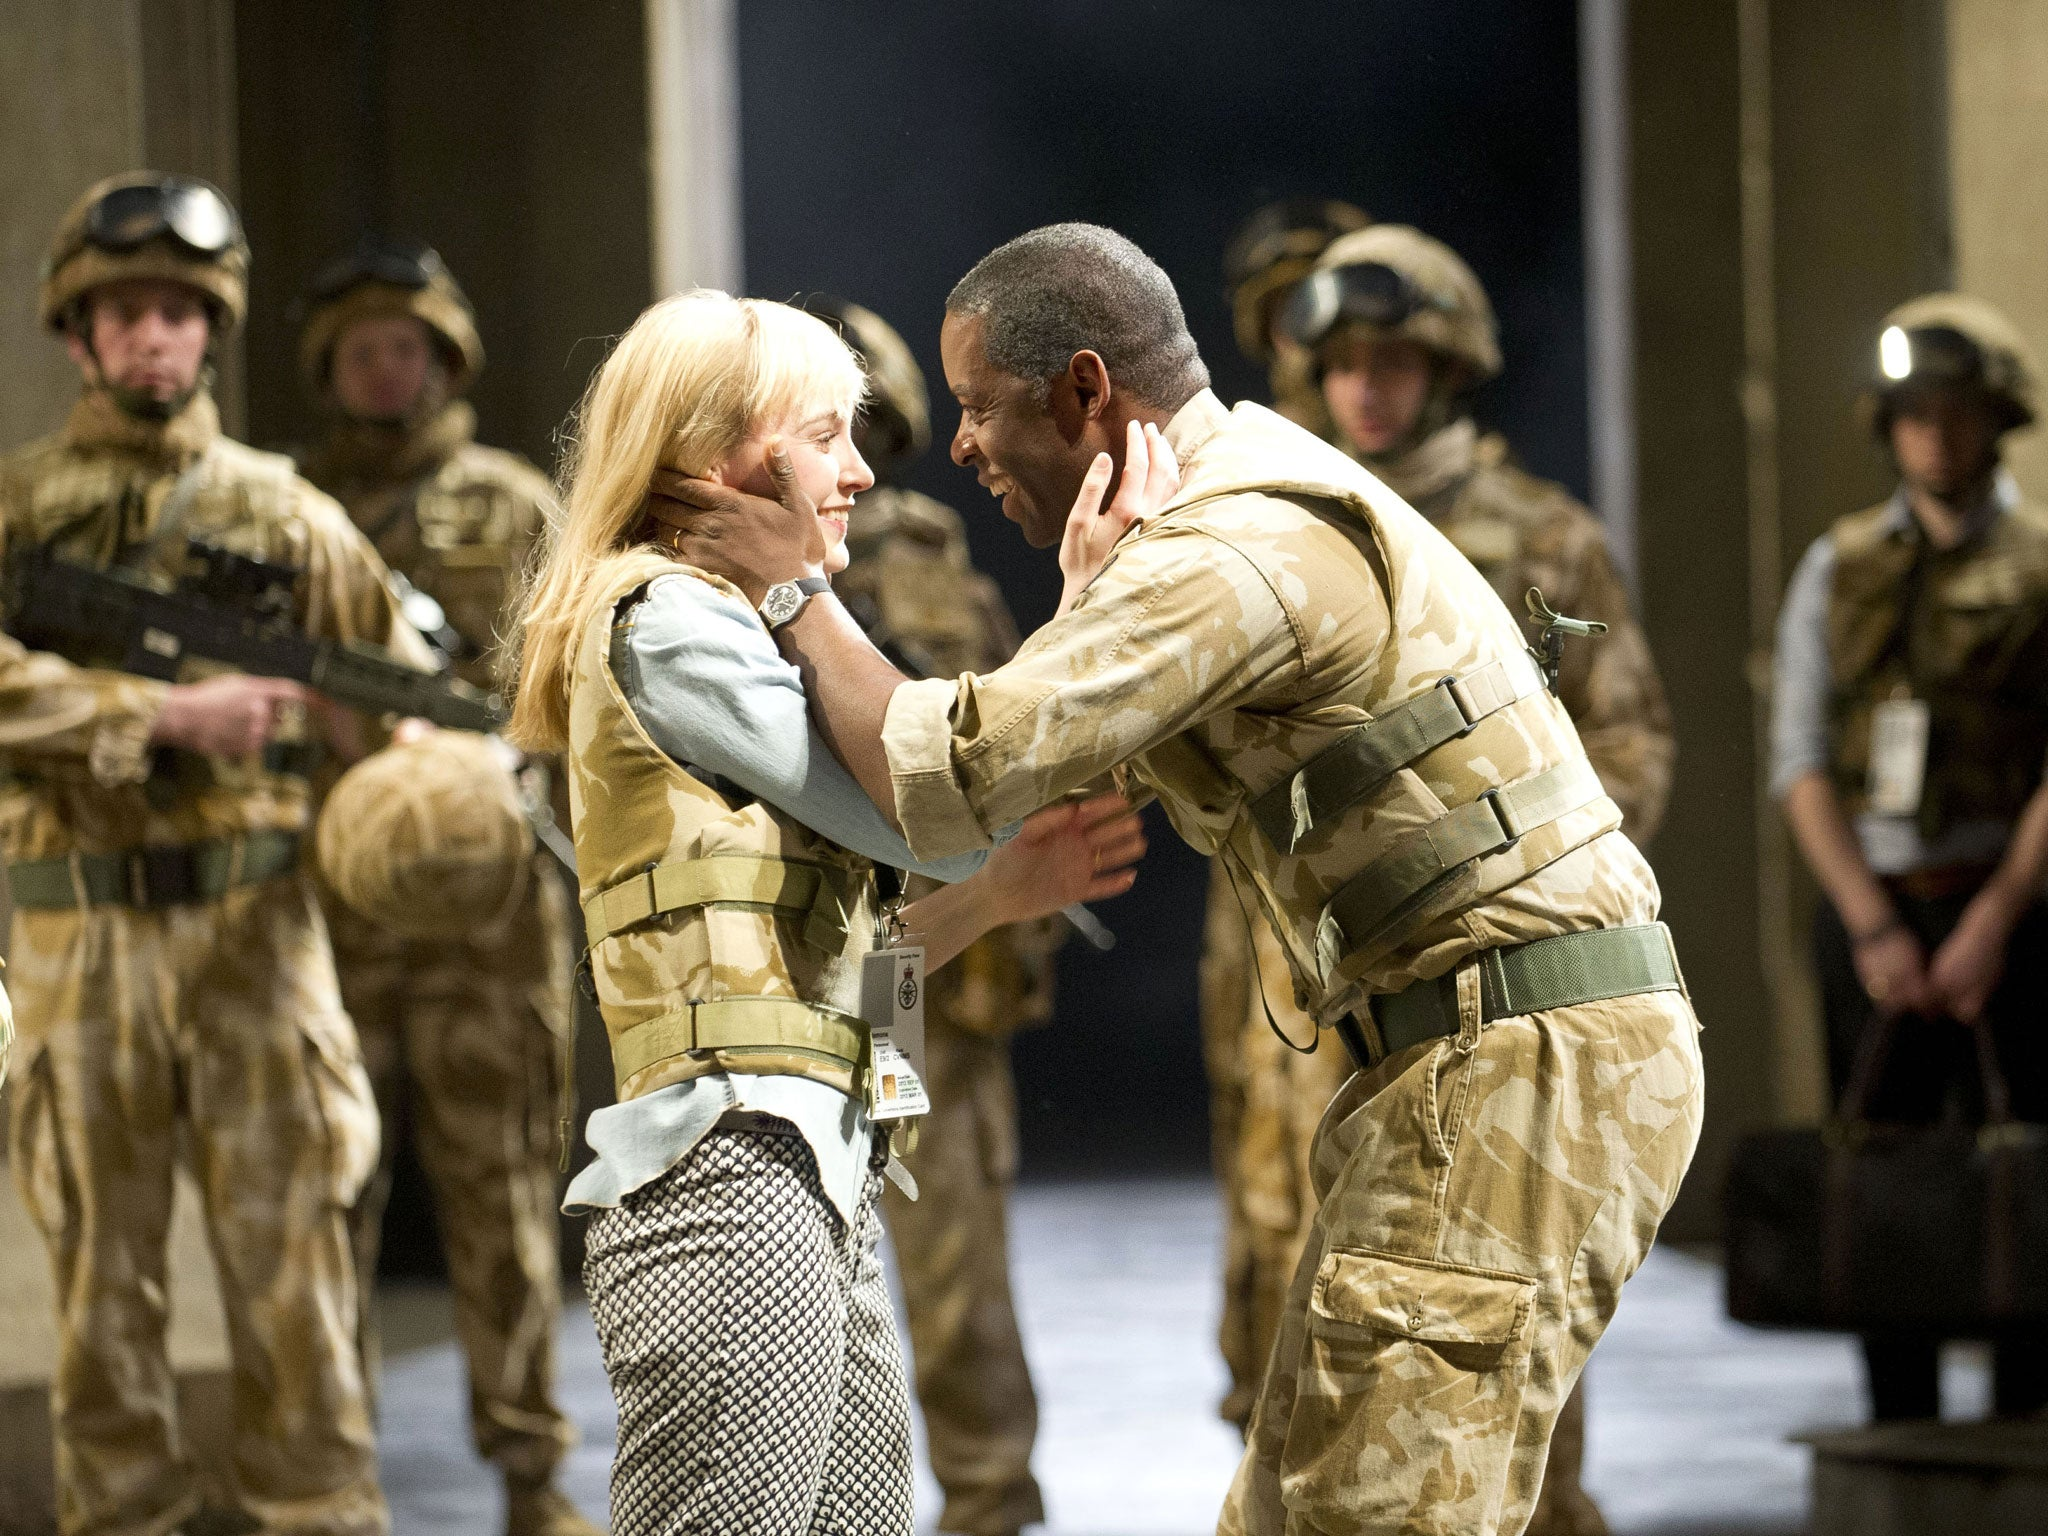 othello enotes Throughout shakespeare's play, othello, the major theme of jealousy is explored in detail through the main characters othello and iago's actions.